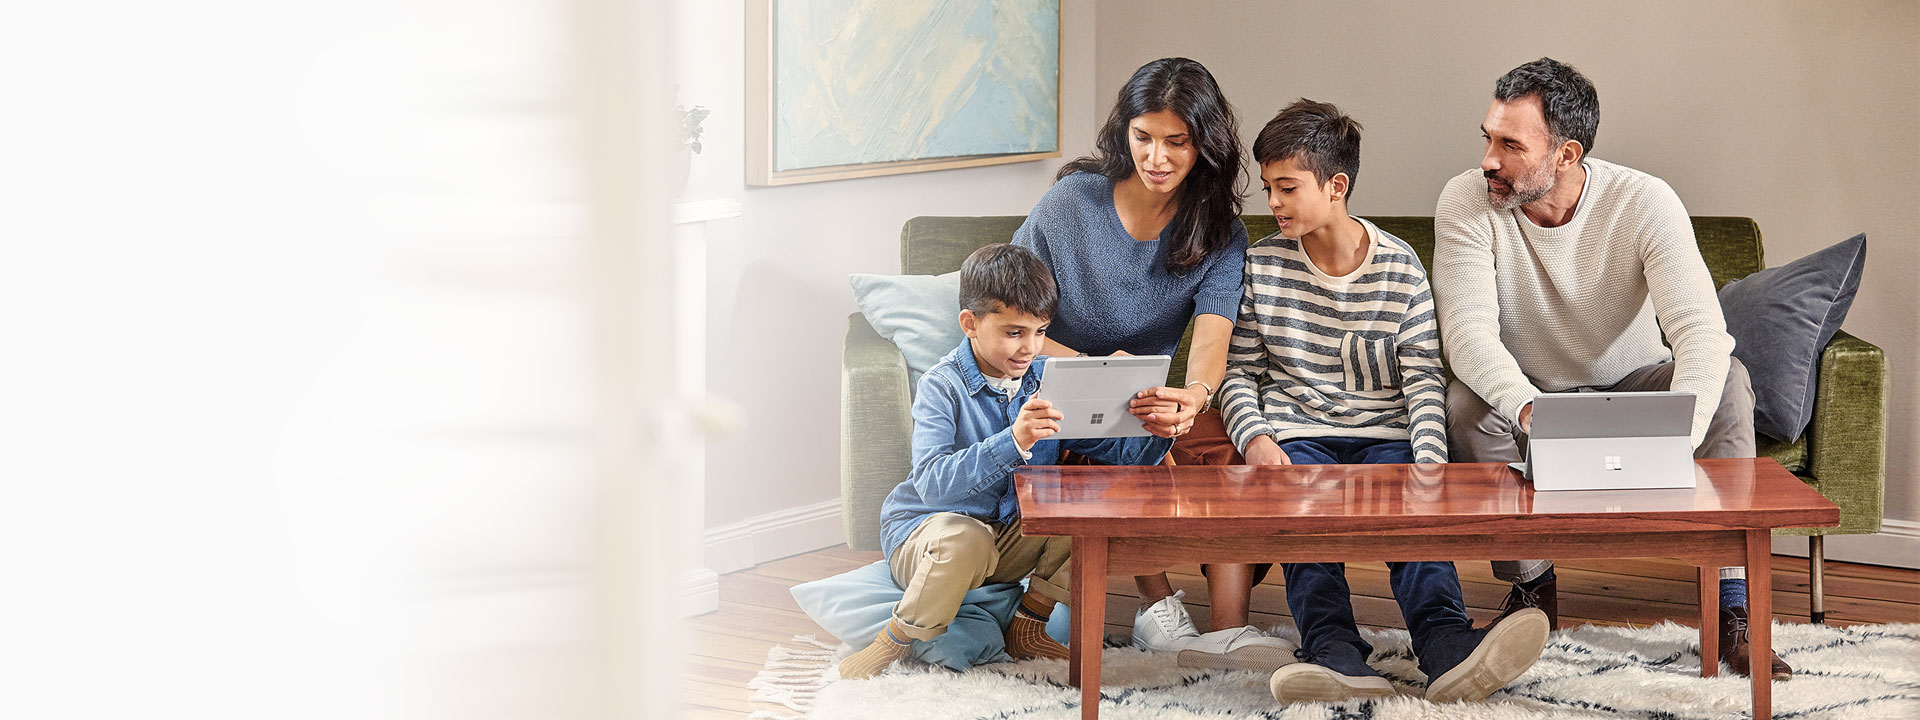 Man, woman and two boys using two Microsoft Surface computers while sitting on a sofa at home